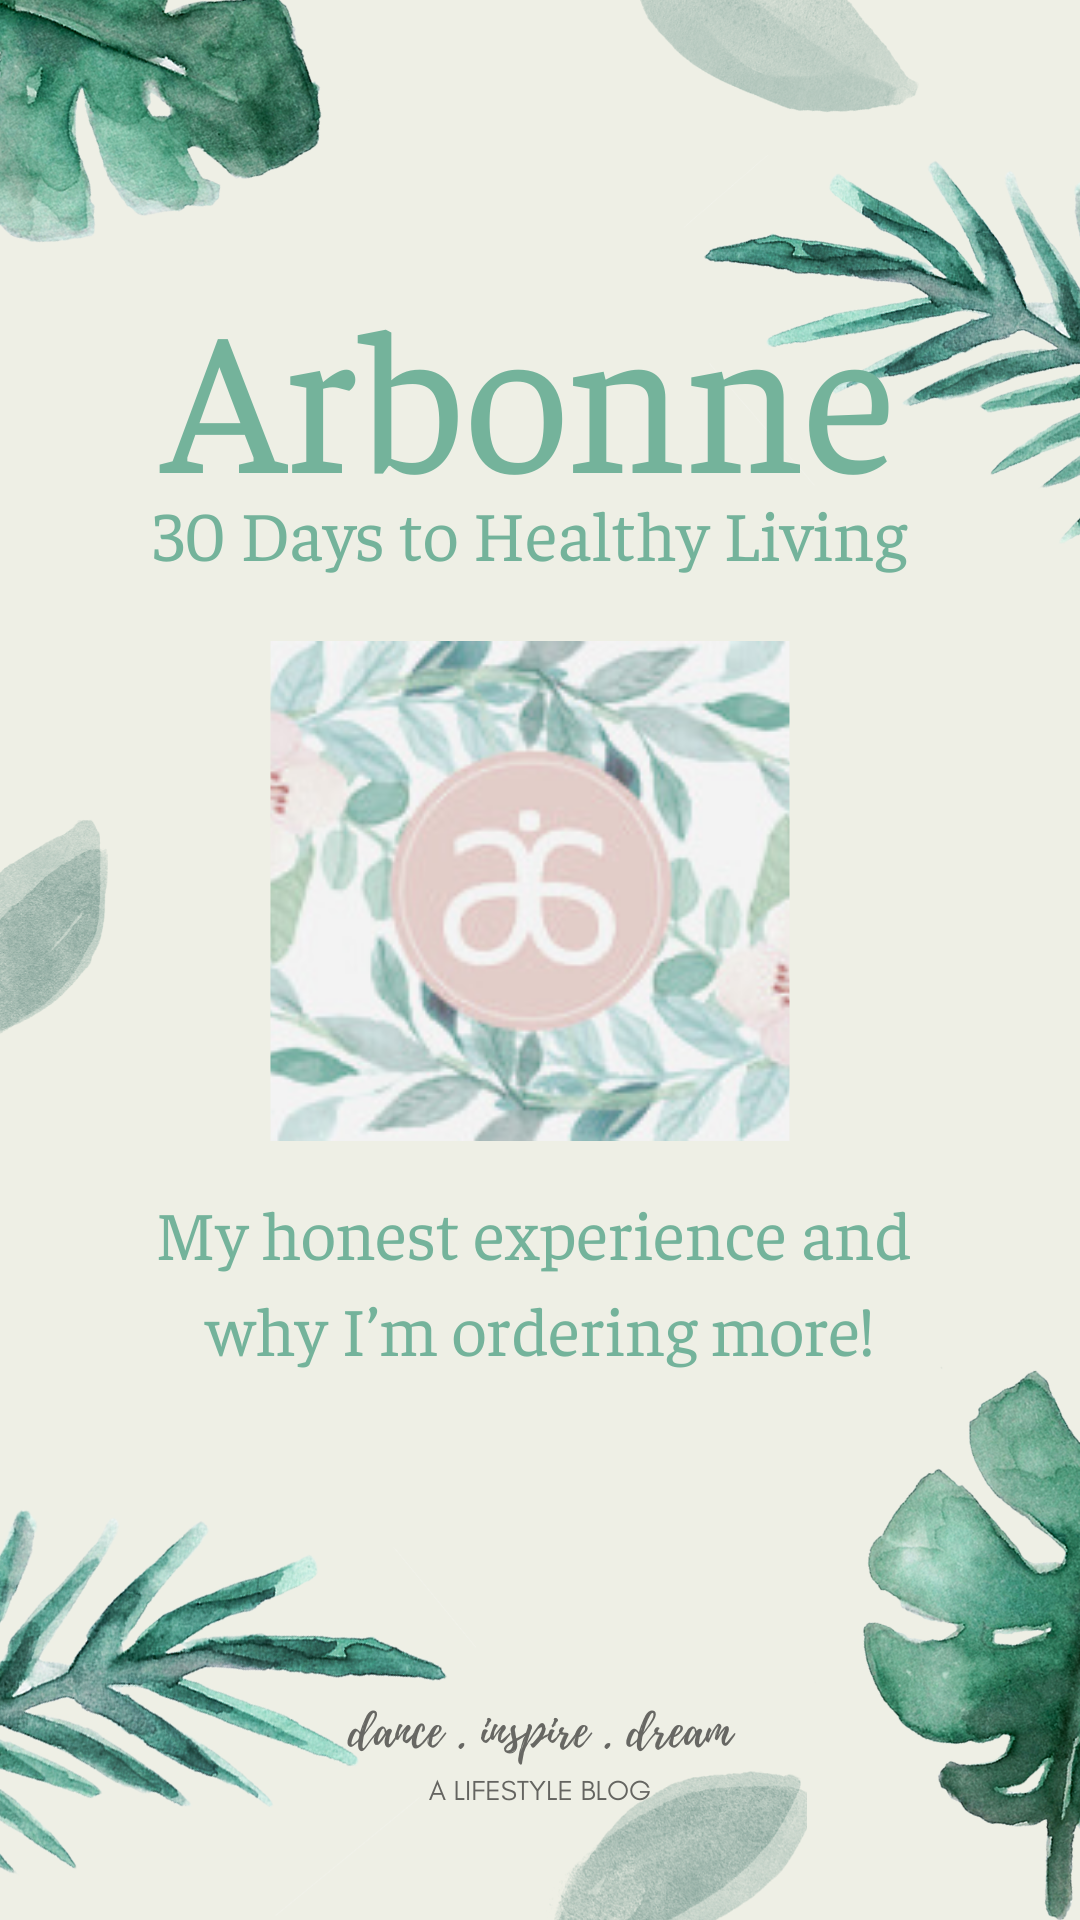 Arbonne 30 Days to Healthy Living (With images) Arbonne